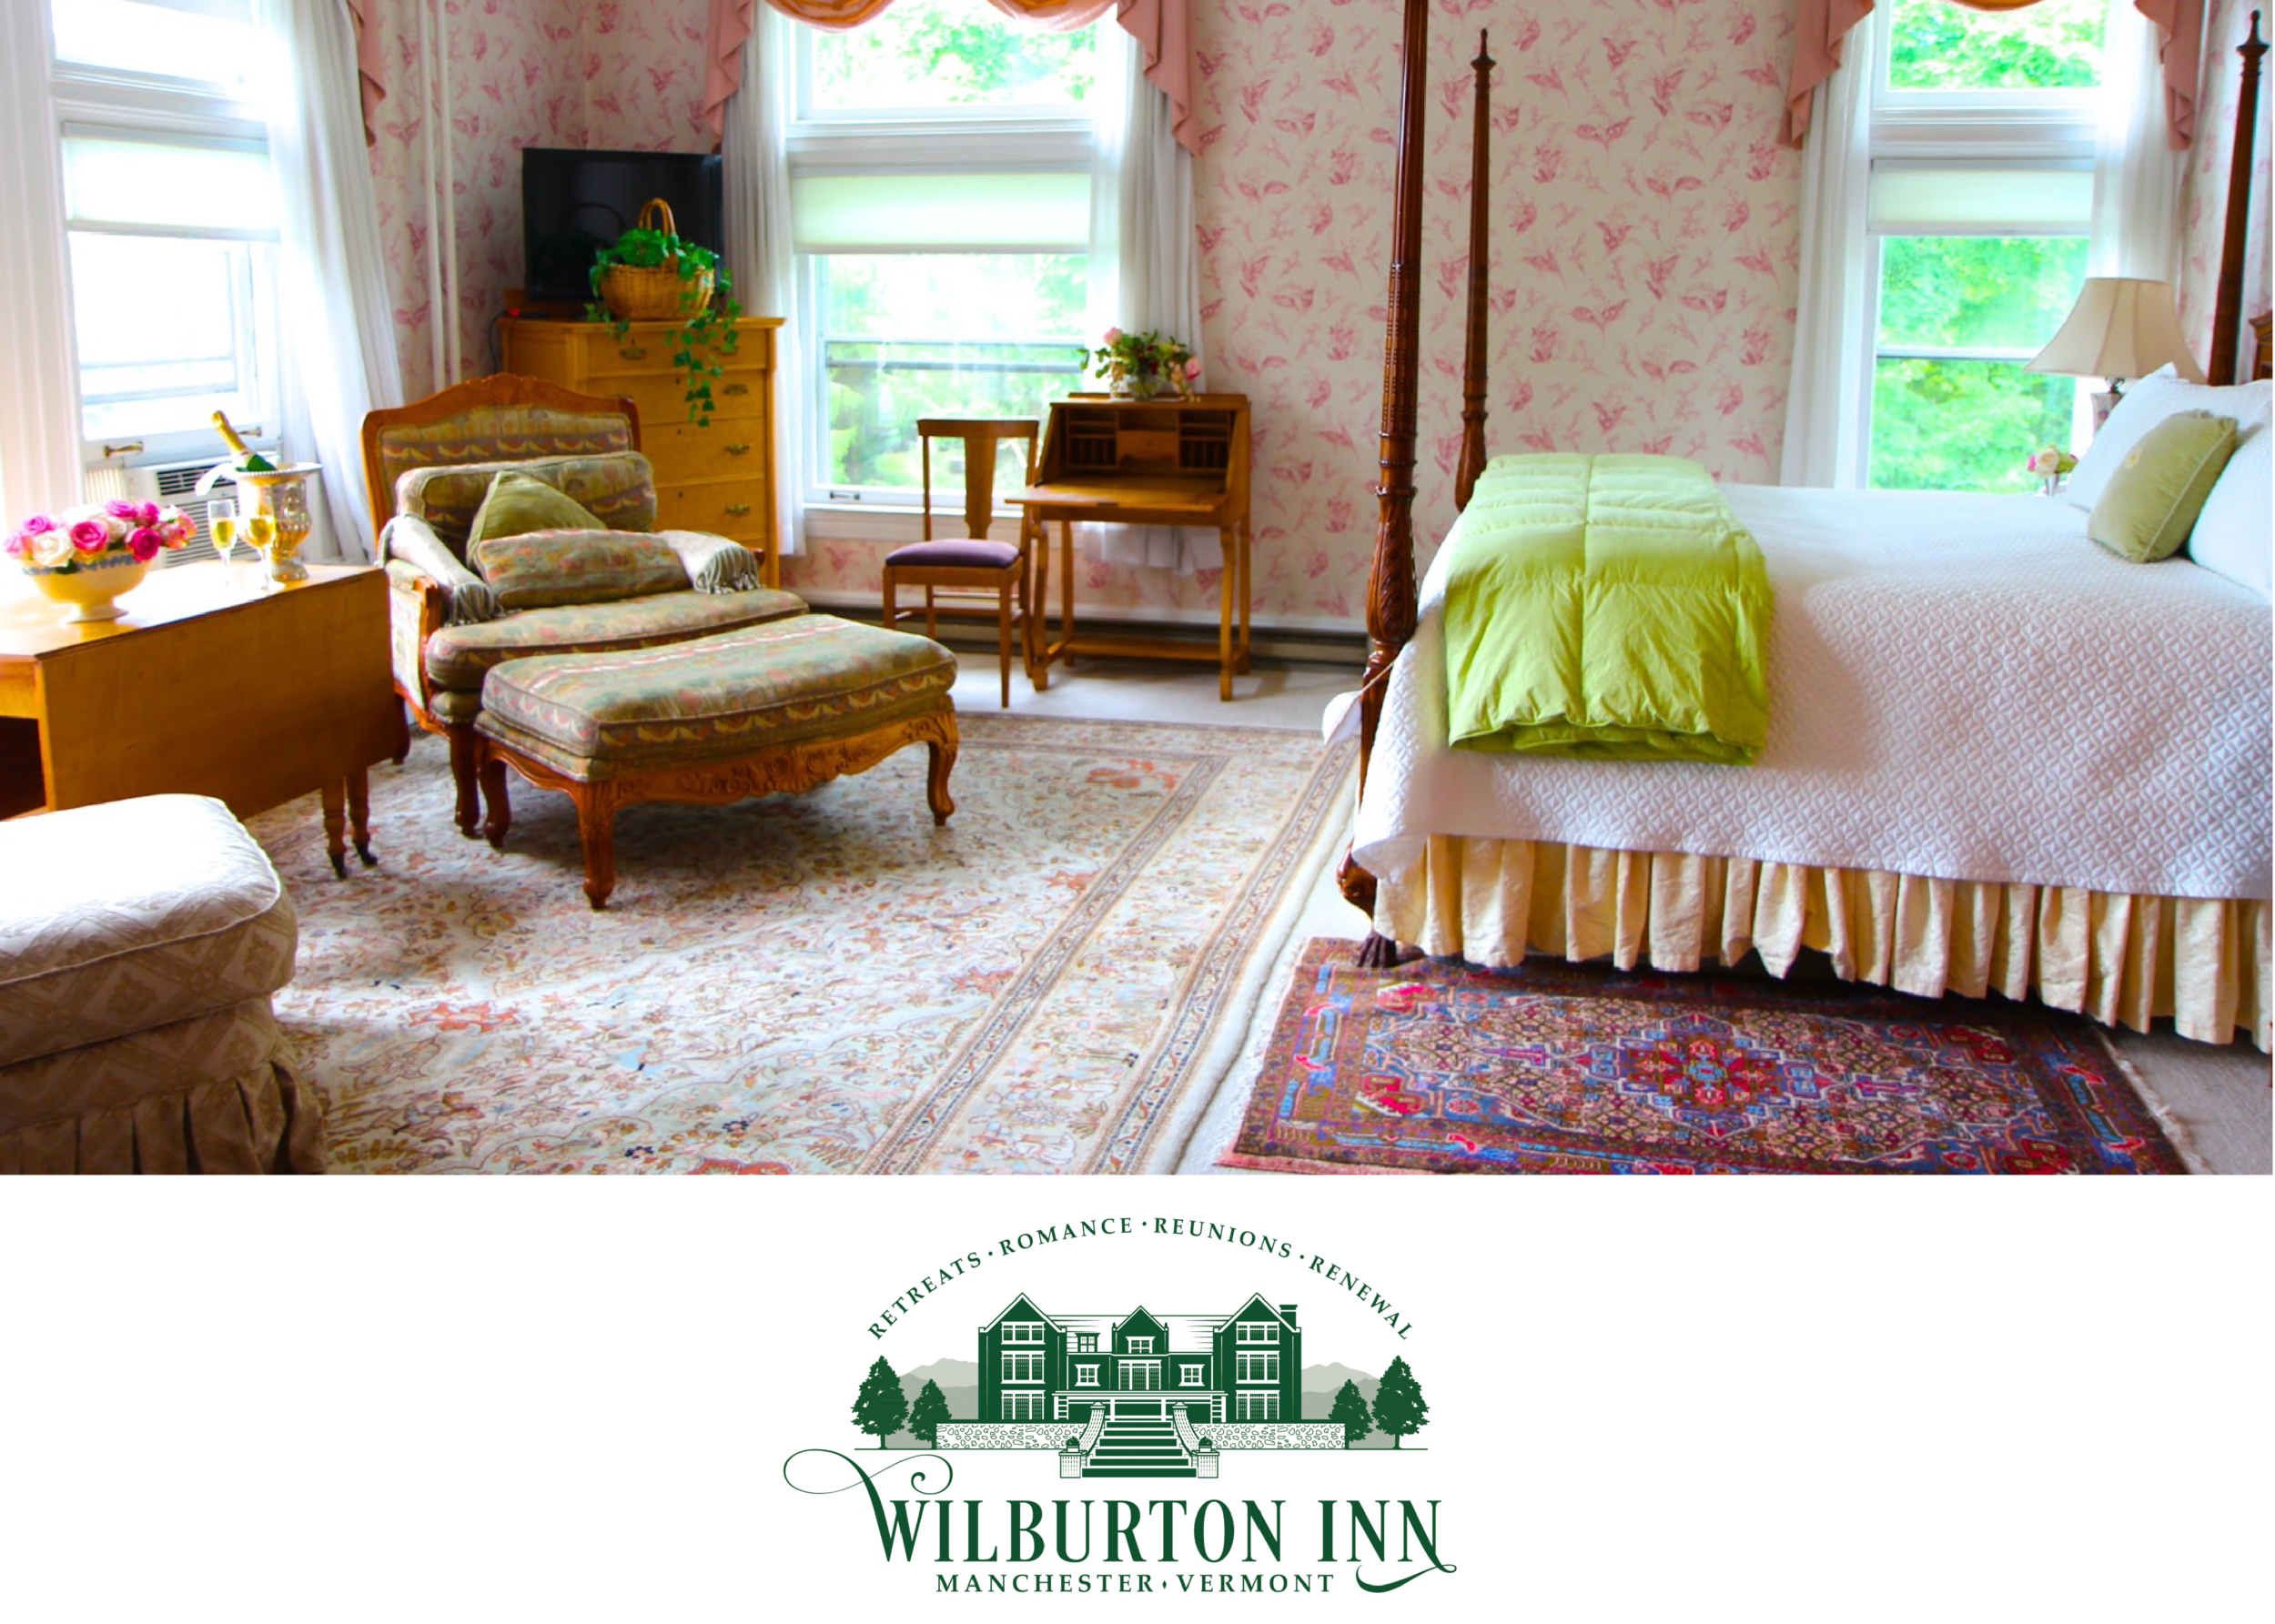 WIlburton Mansion Guest Room.png